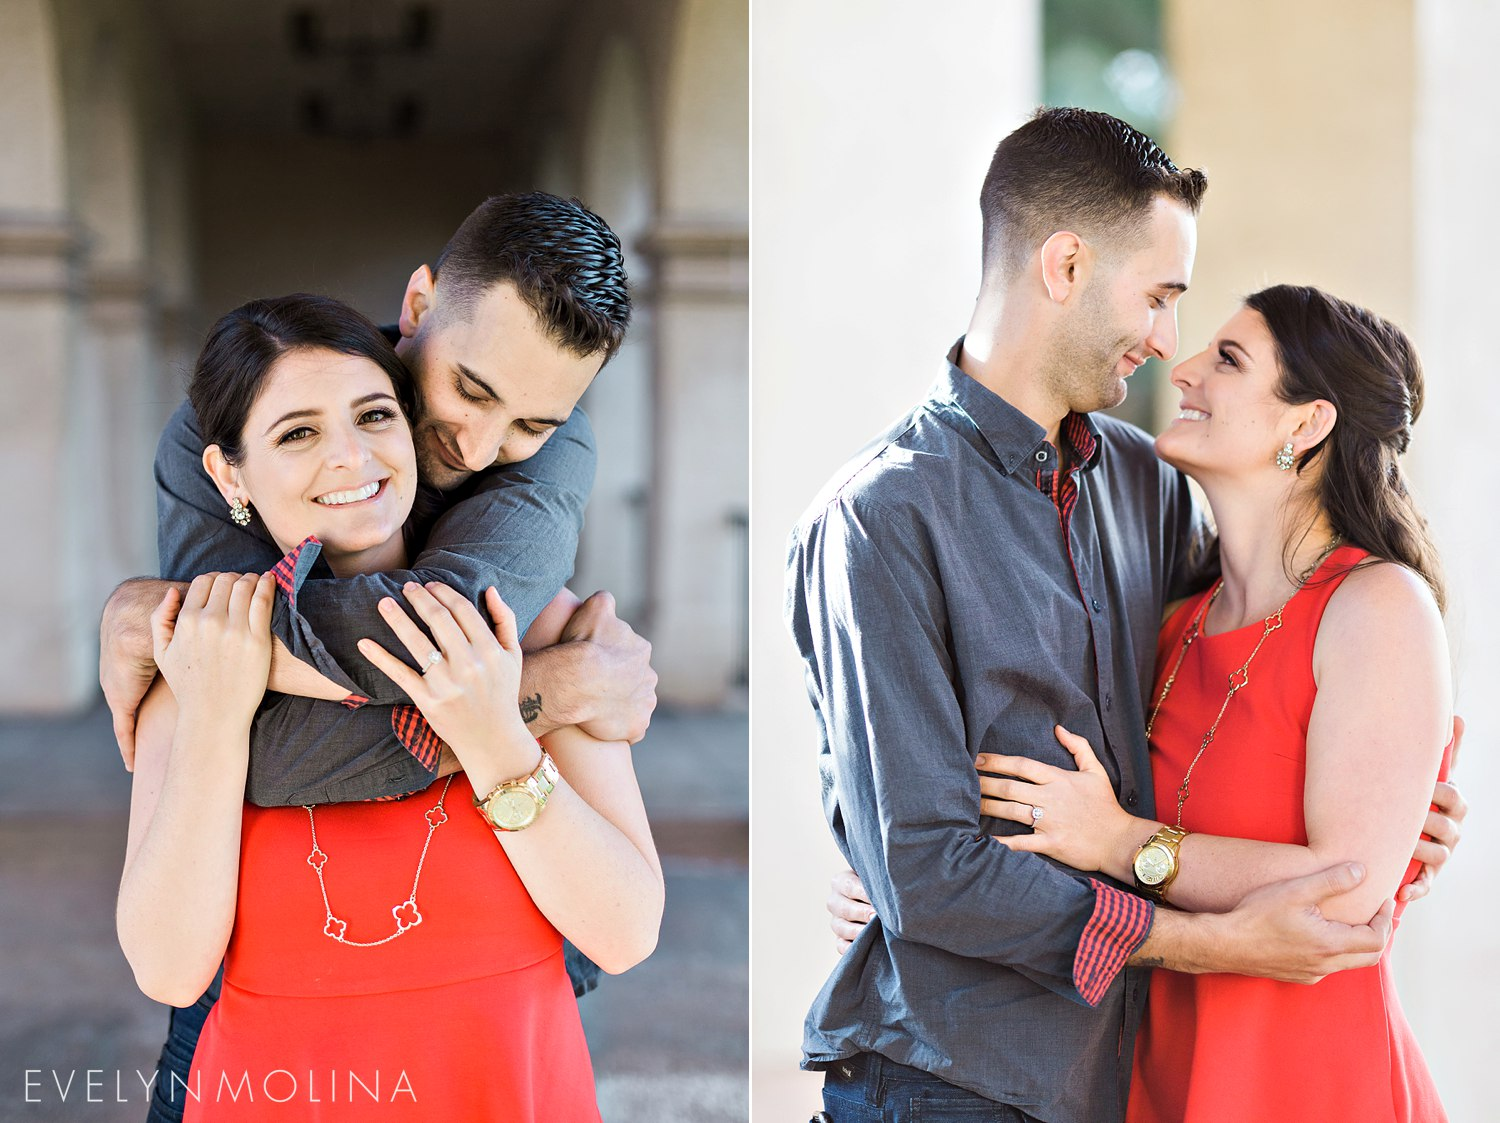 Sunset Cliffs Engagement Session - Carly and Alex - Evelyn Molina Photography_0008.jpg